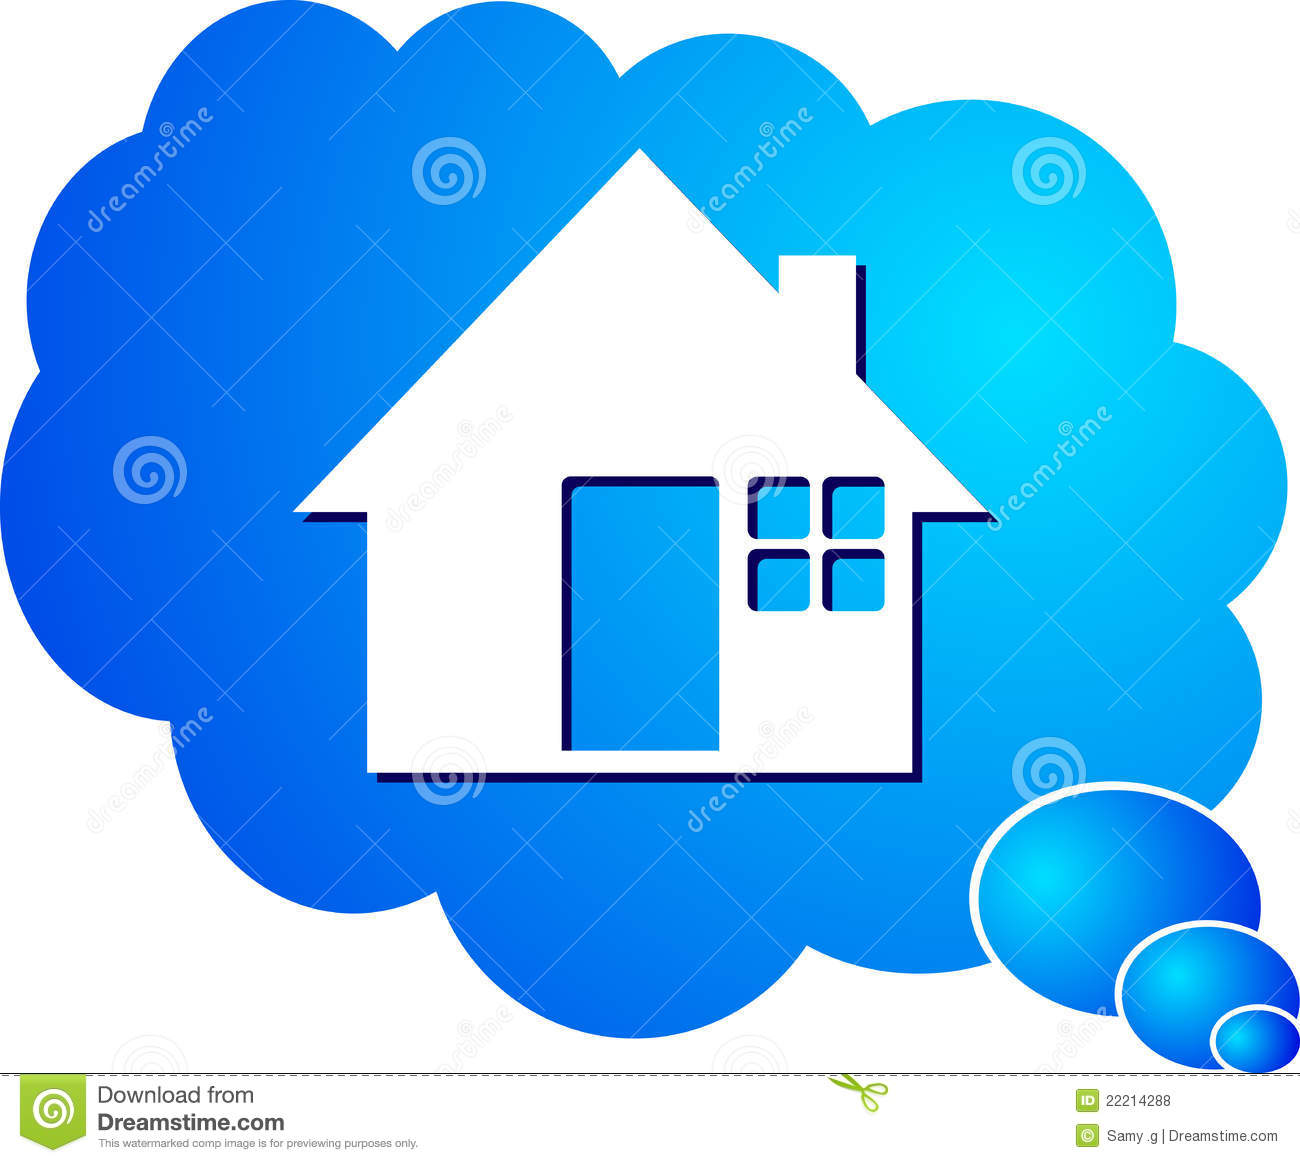 Dream Home Royalty Free Stock Photos Image 22214288